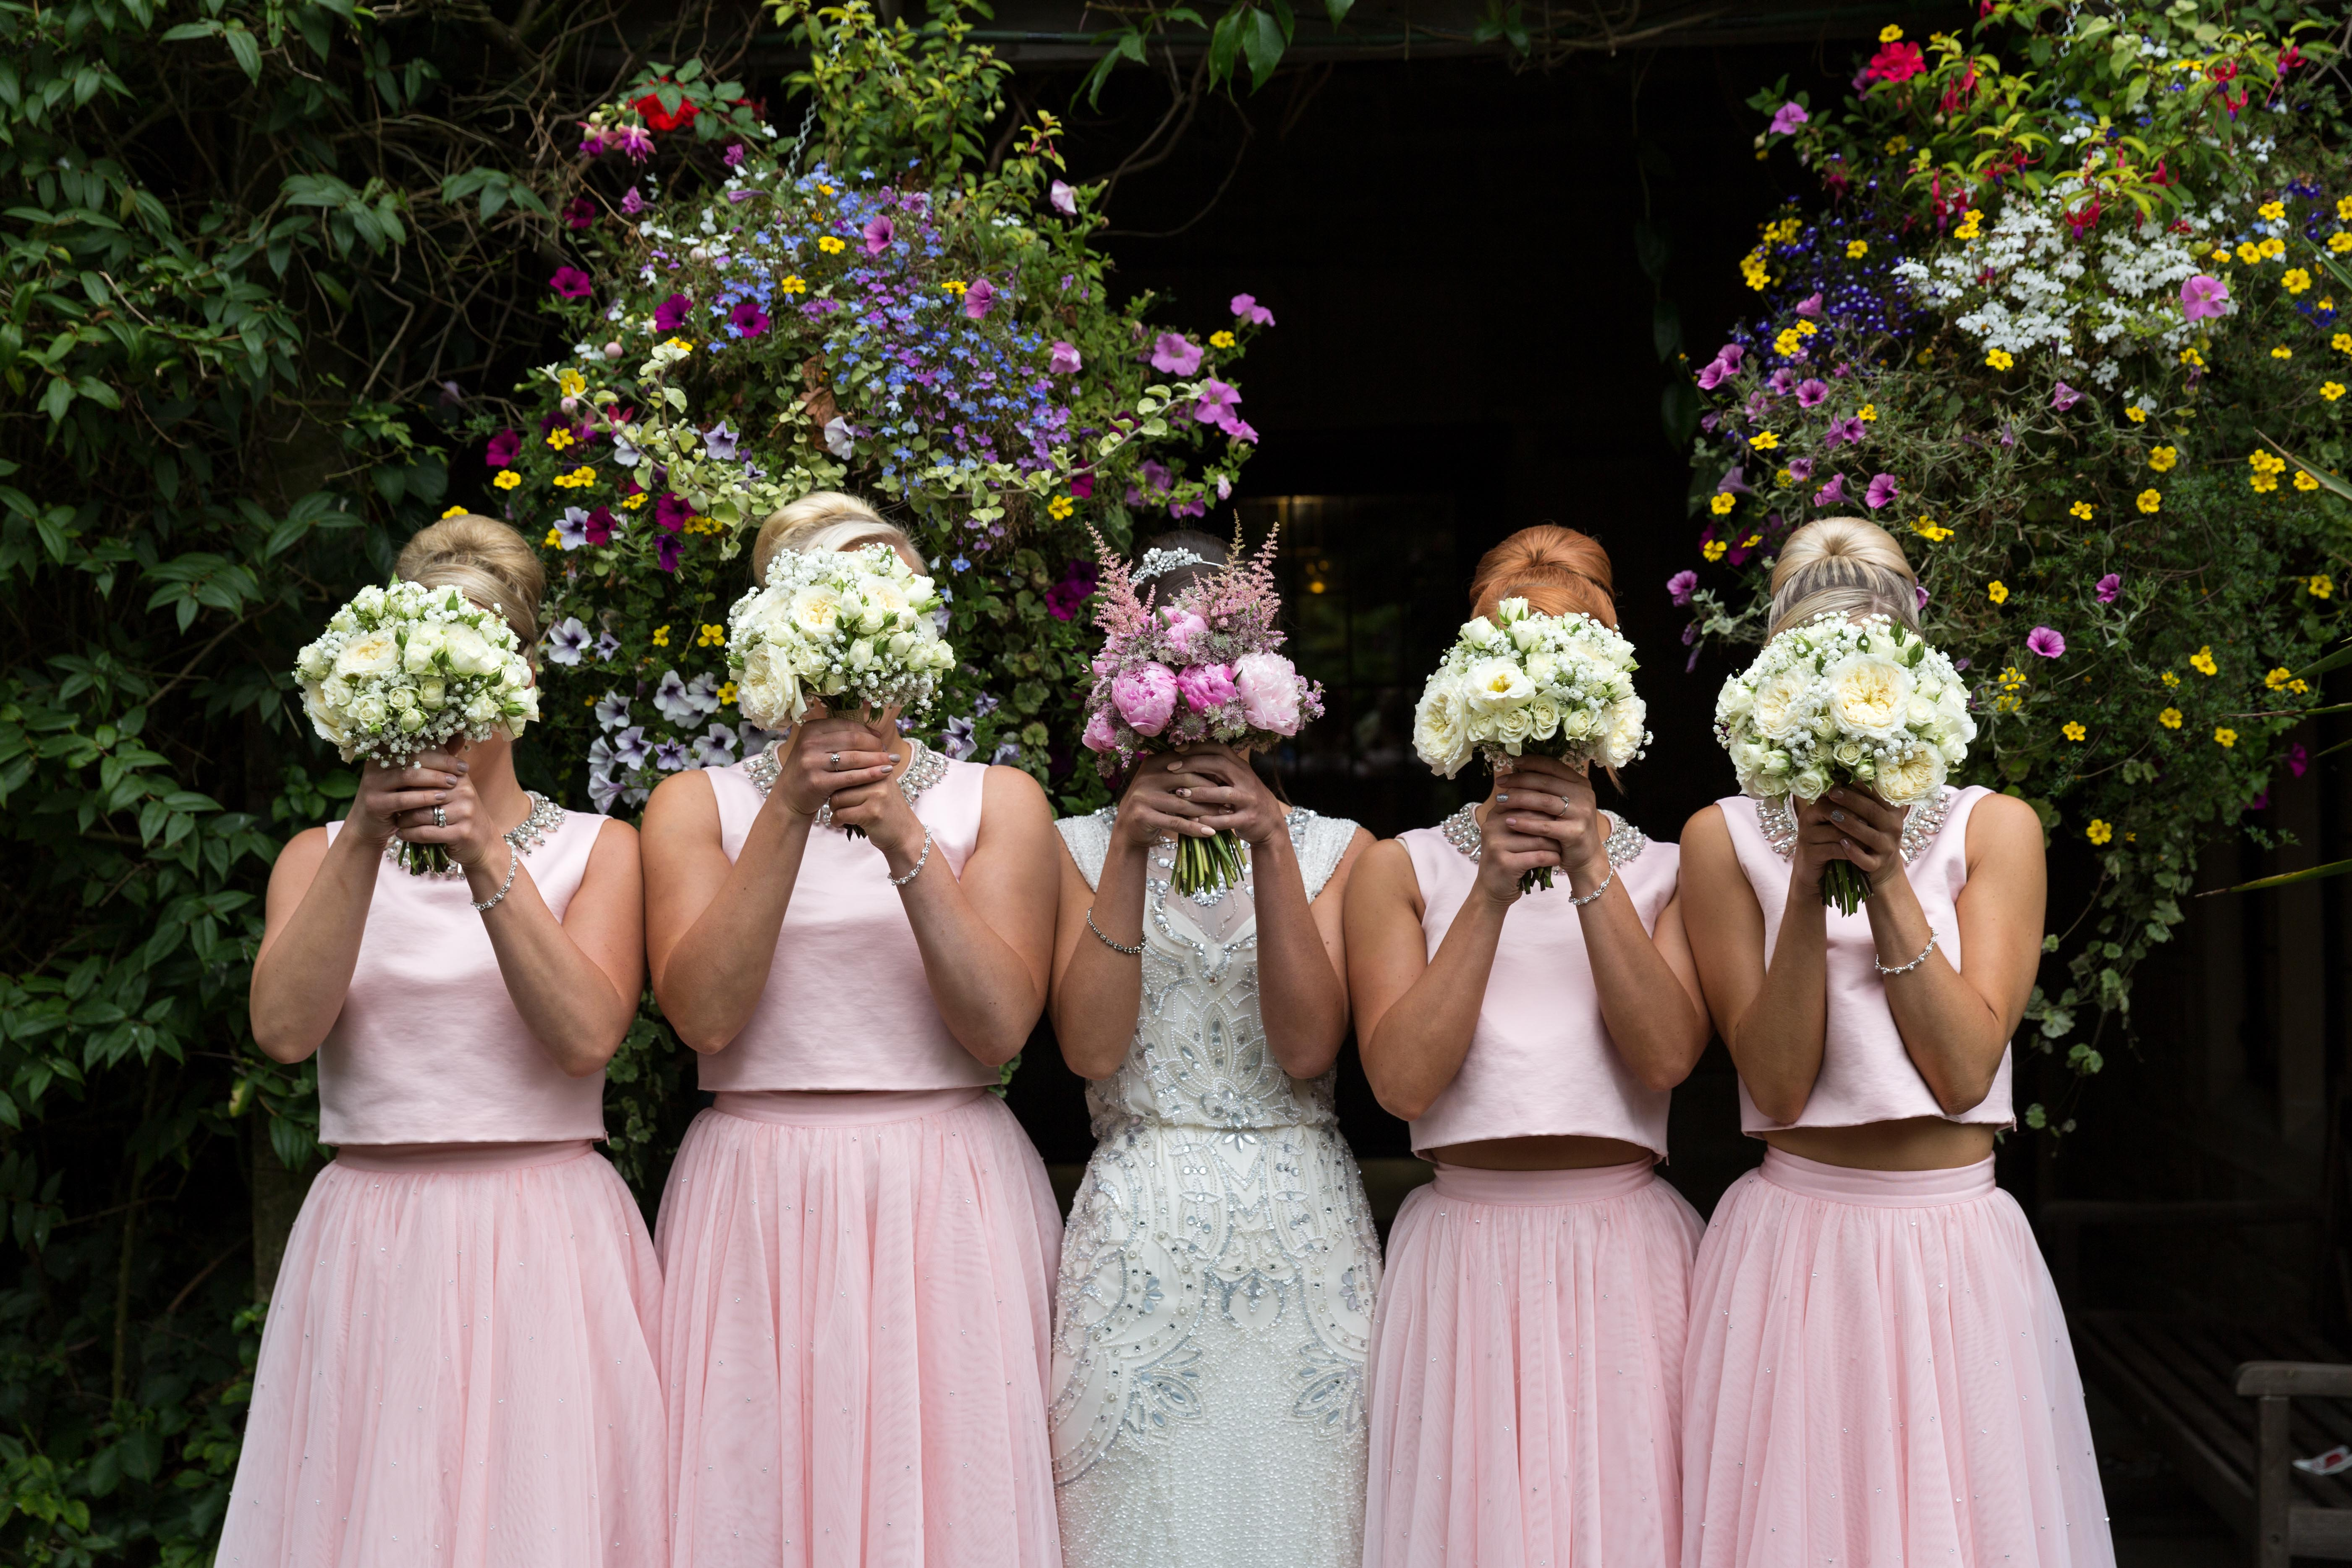 Bridal party photo by Jack Cook